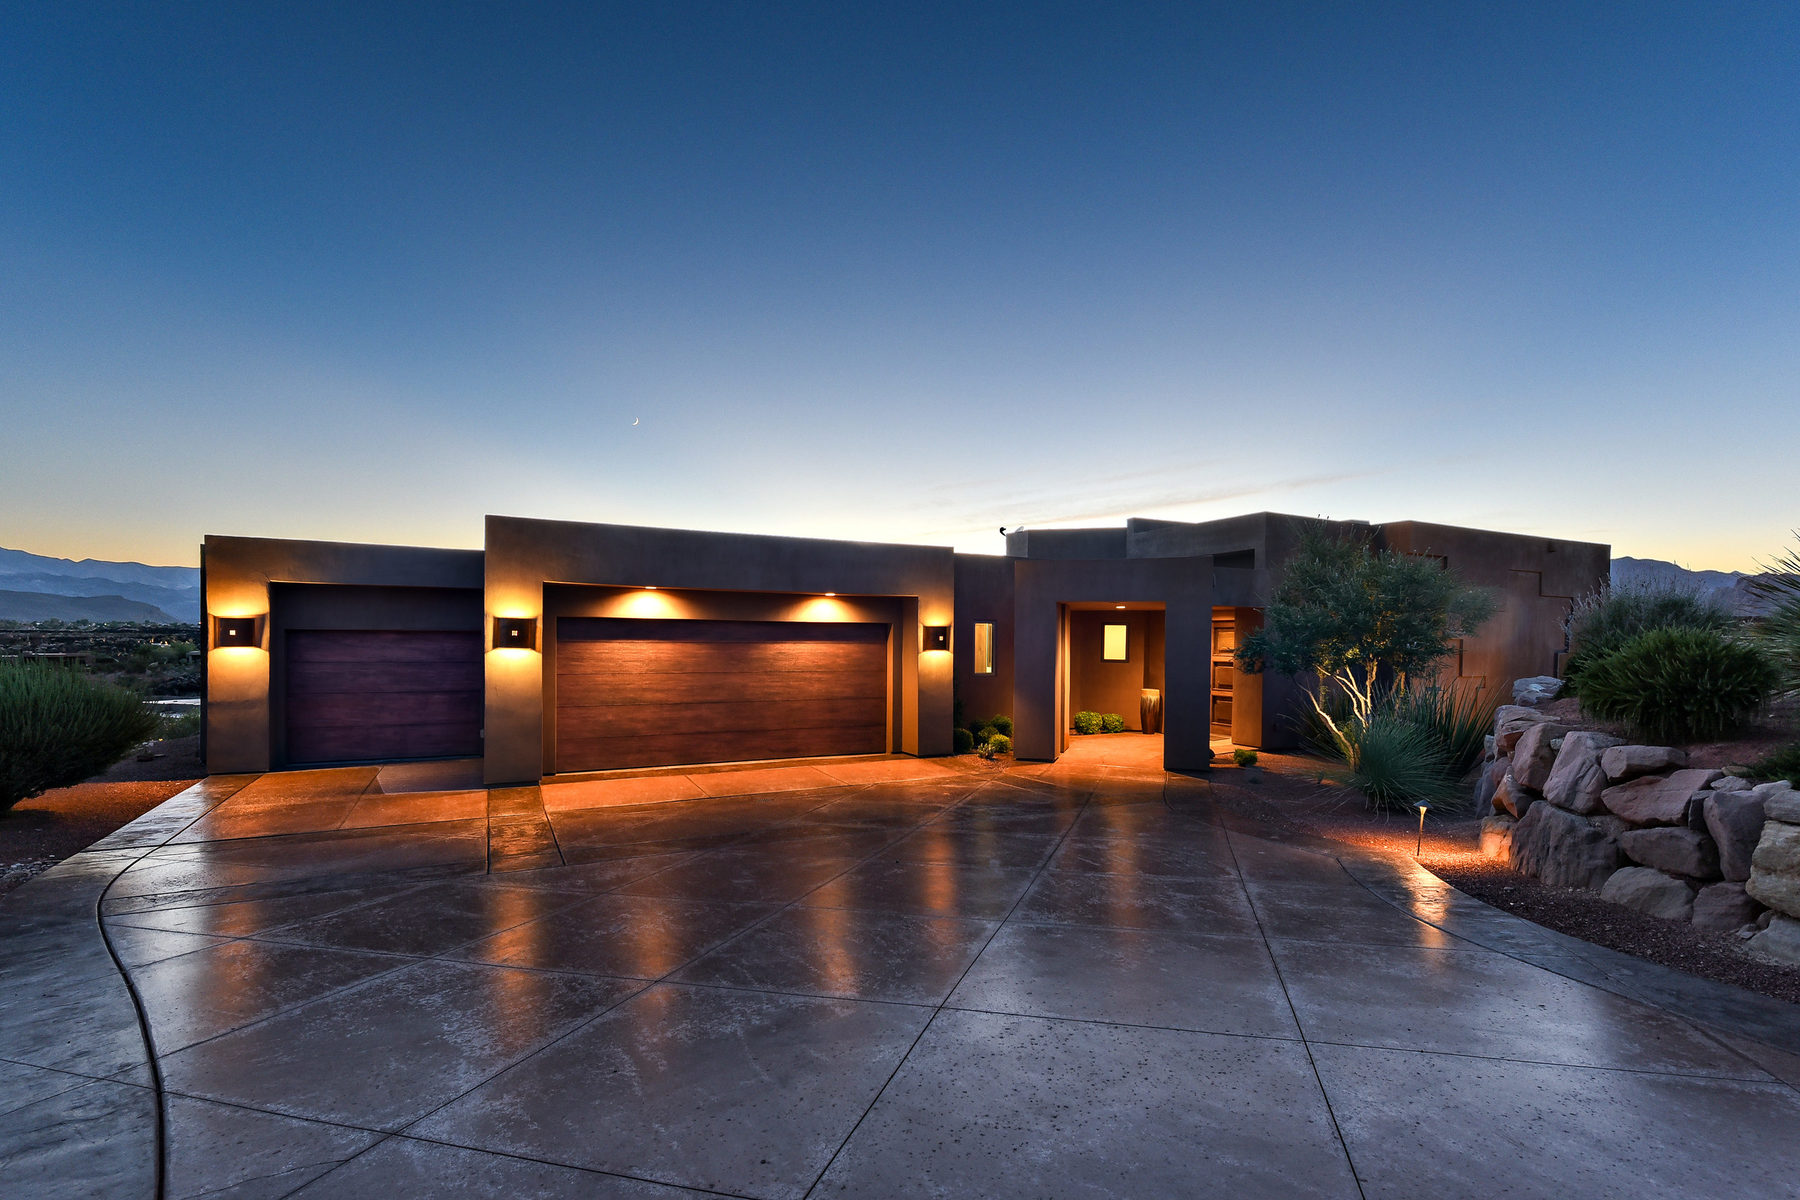 Single Family Home for Sale at Timeless Contemporary Retreat 2411 Tavimaus Cir St. George, Utah, 84770 United States